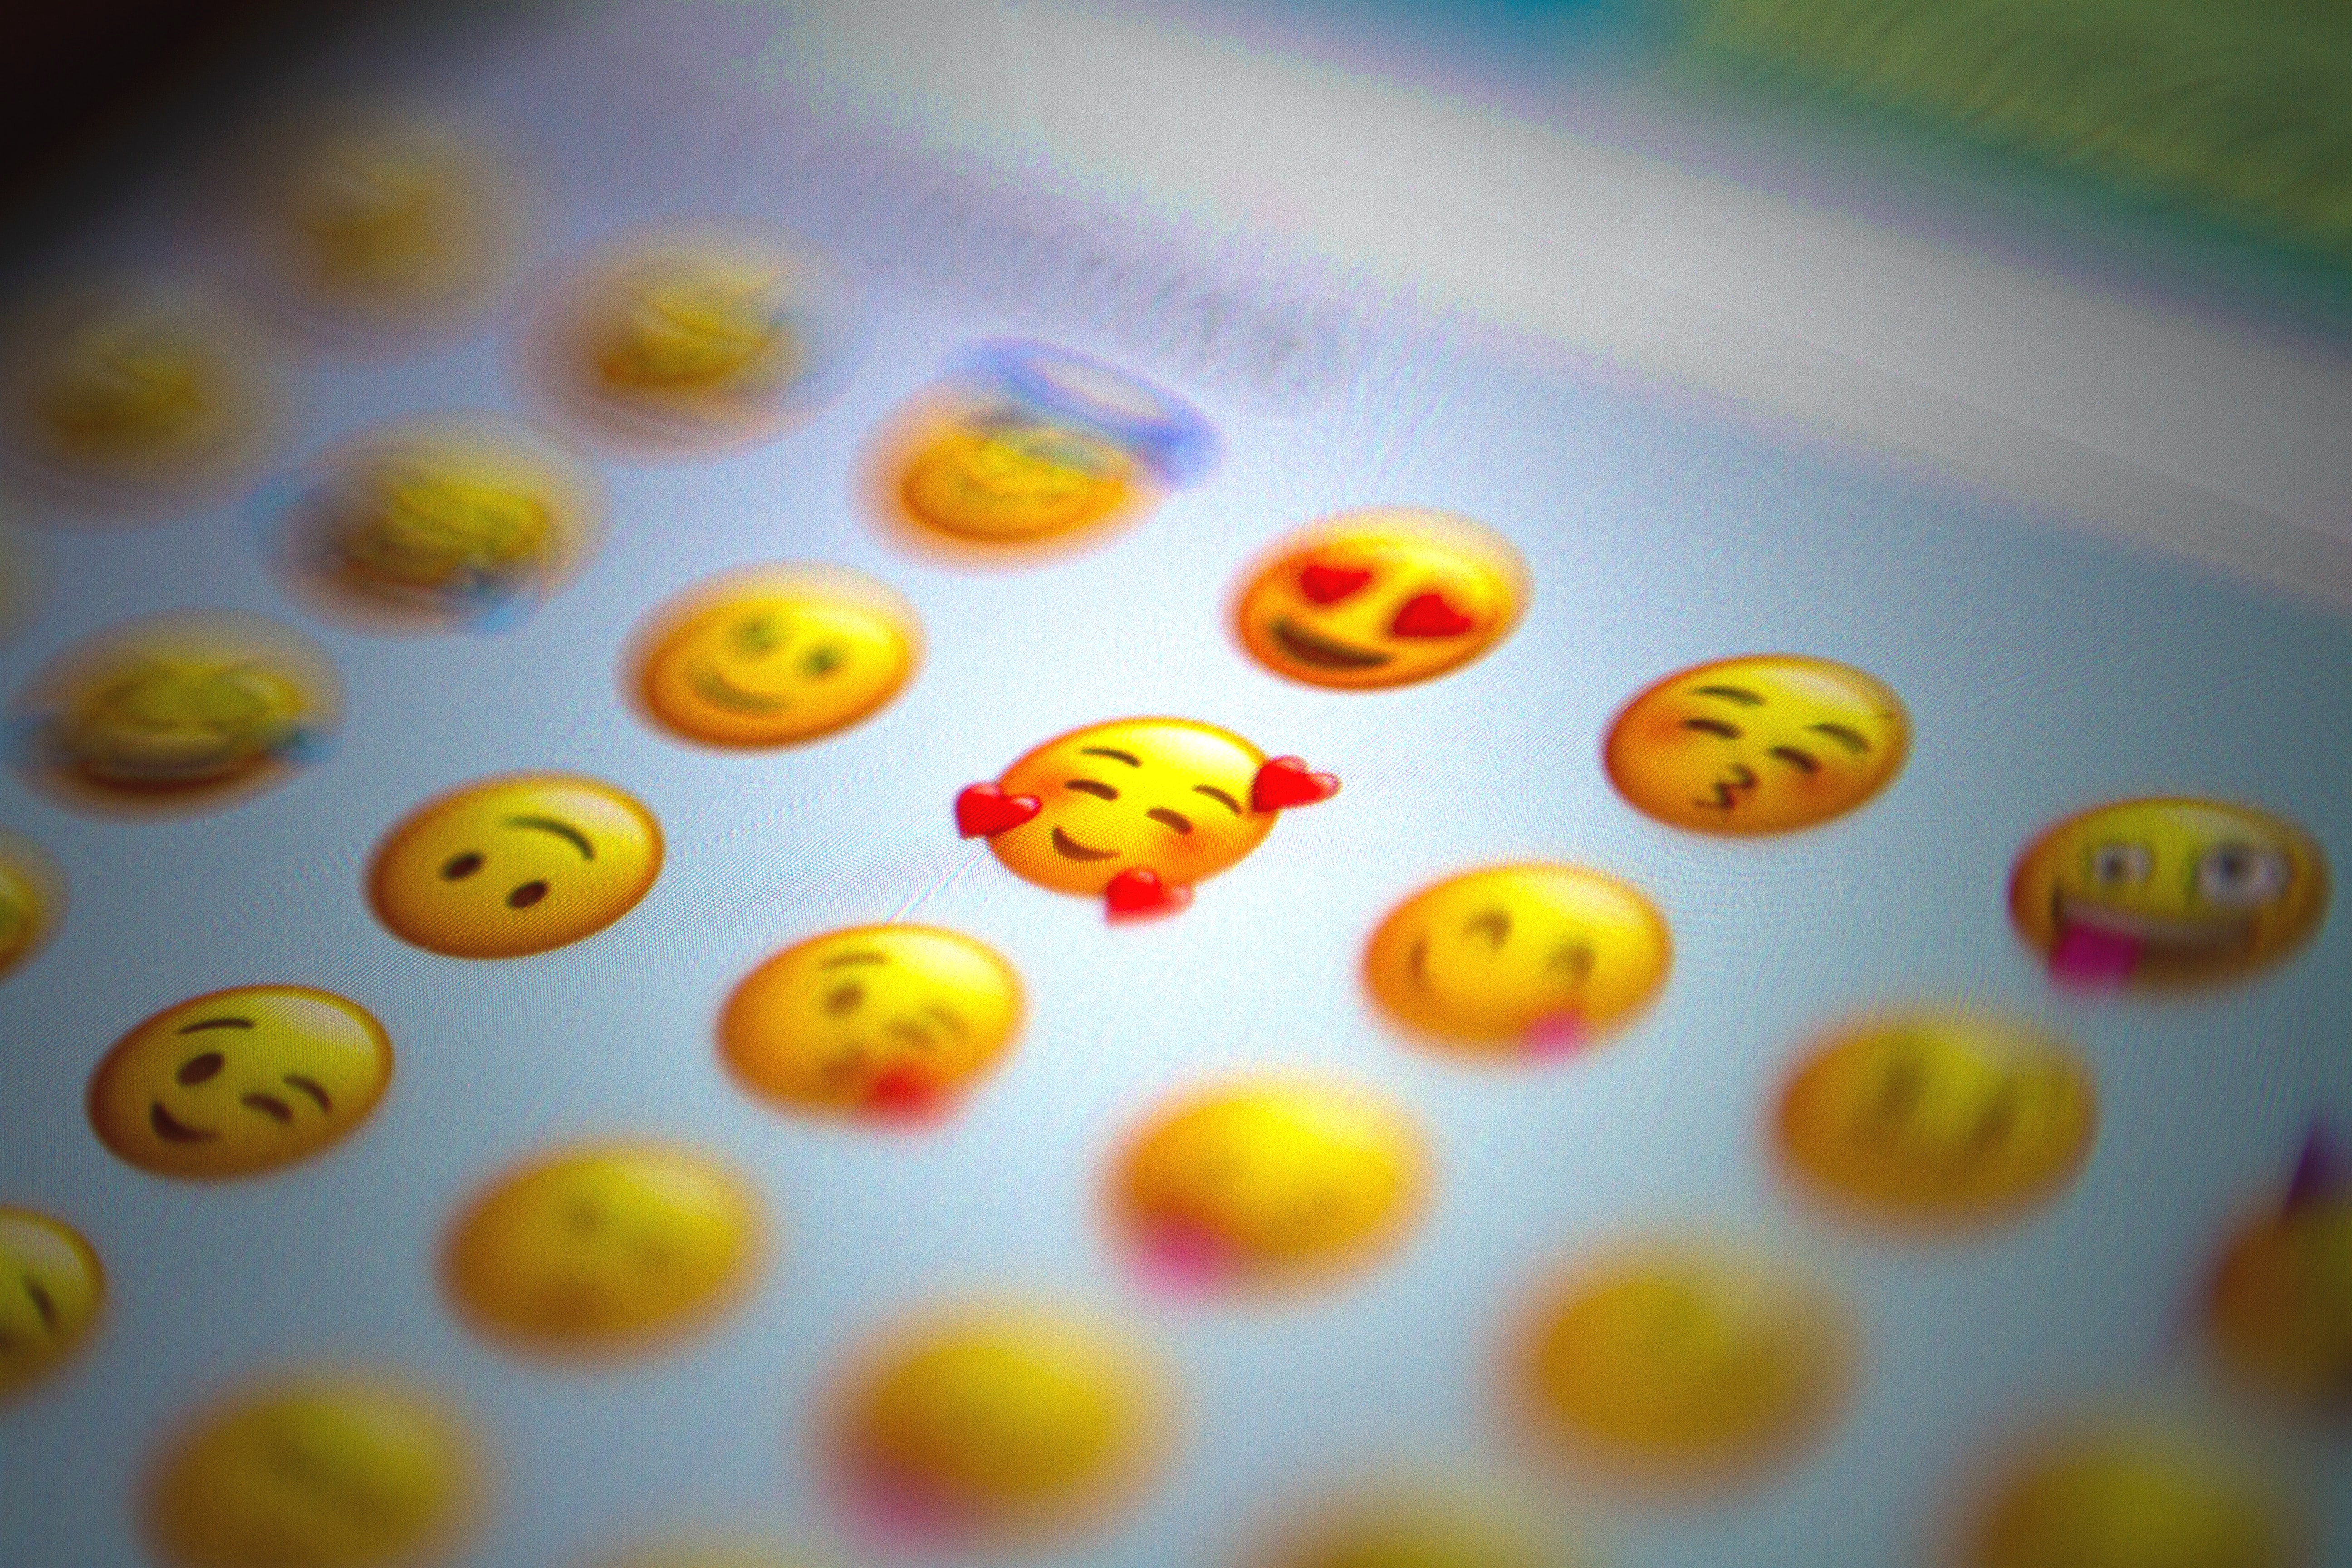 A collection of emojis on a mobile phone screen - Photo by Domingo Alvarez E on Unsplash